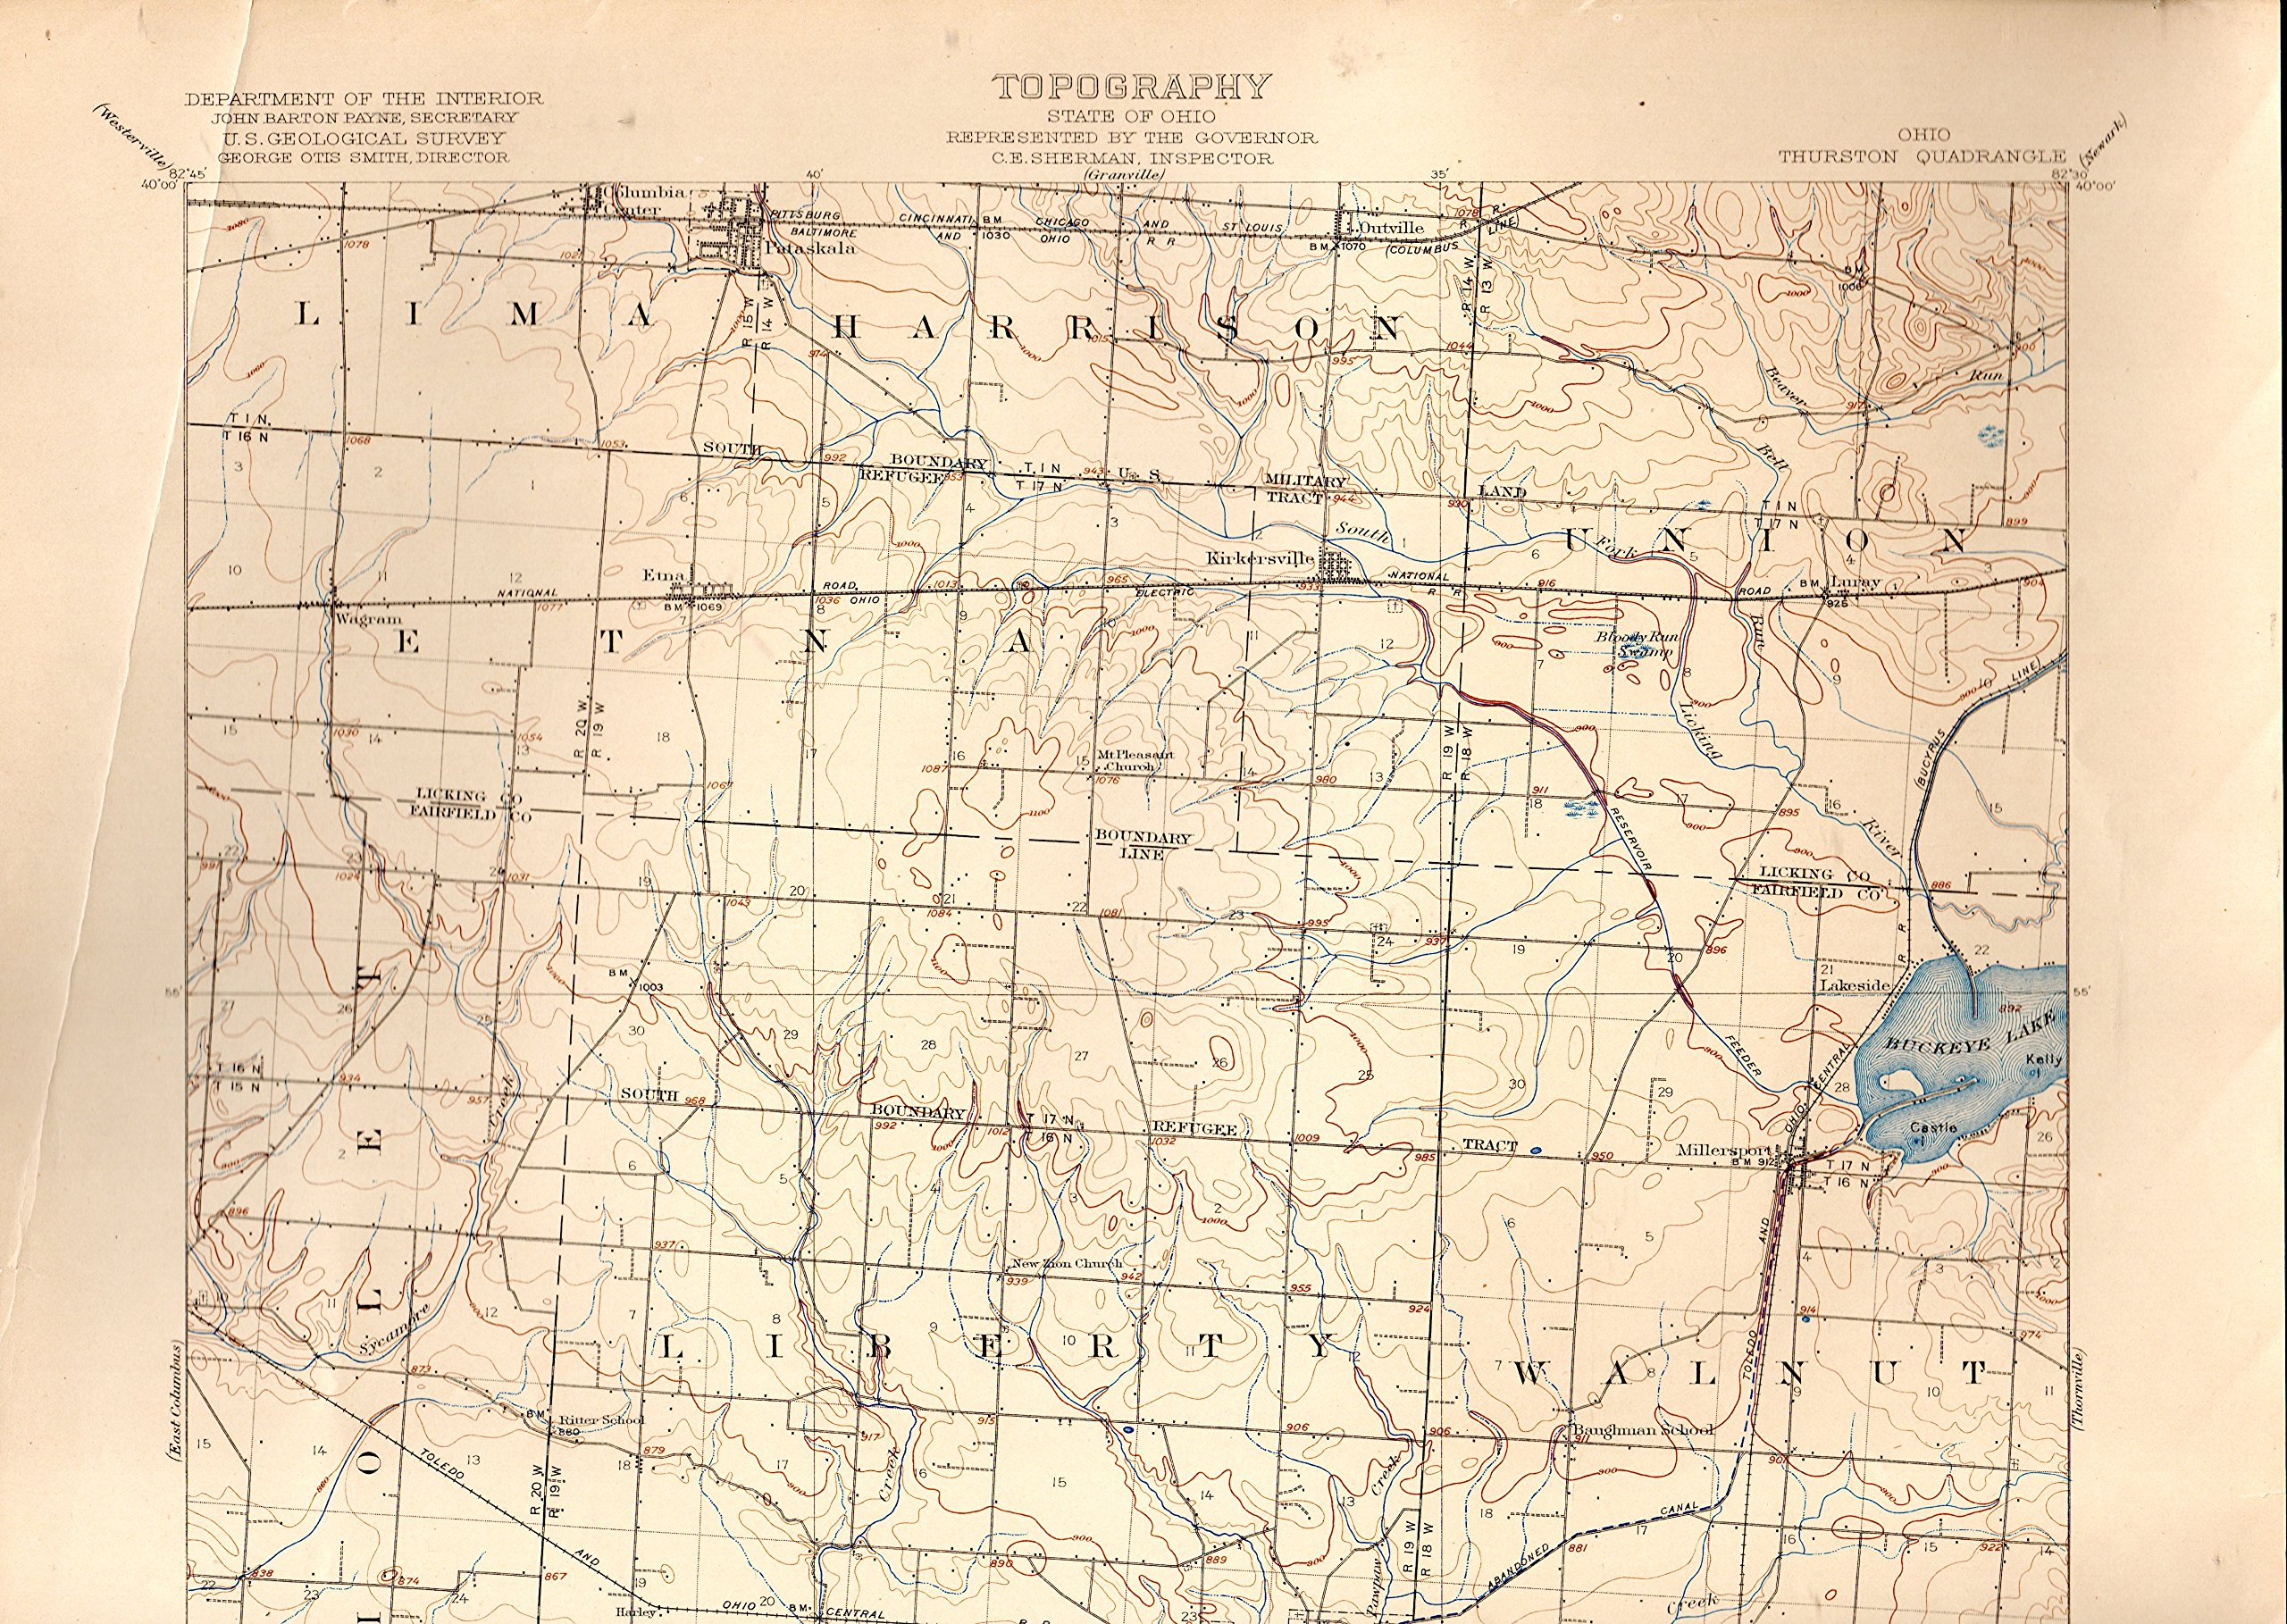 Map Ohio Thurston Quadrangle From Topographical Maps Of The